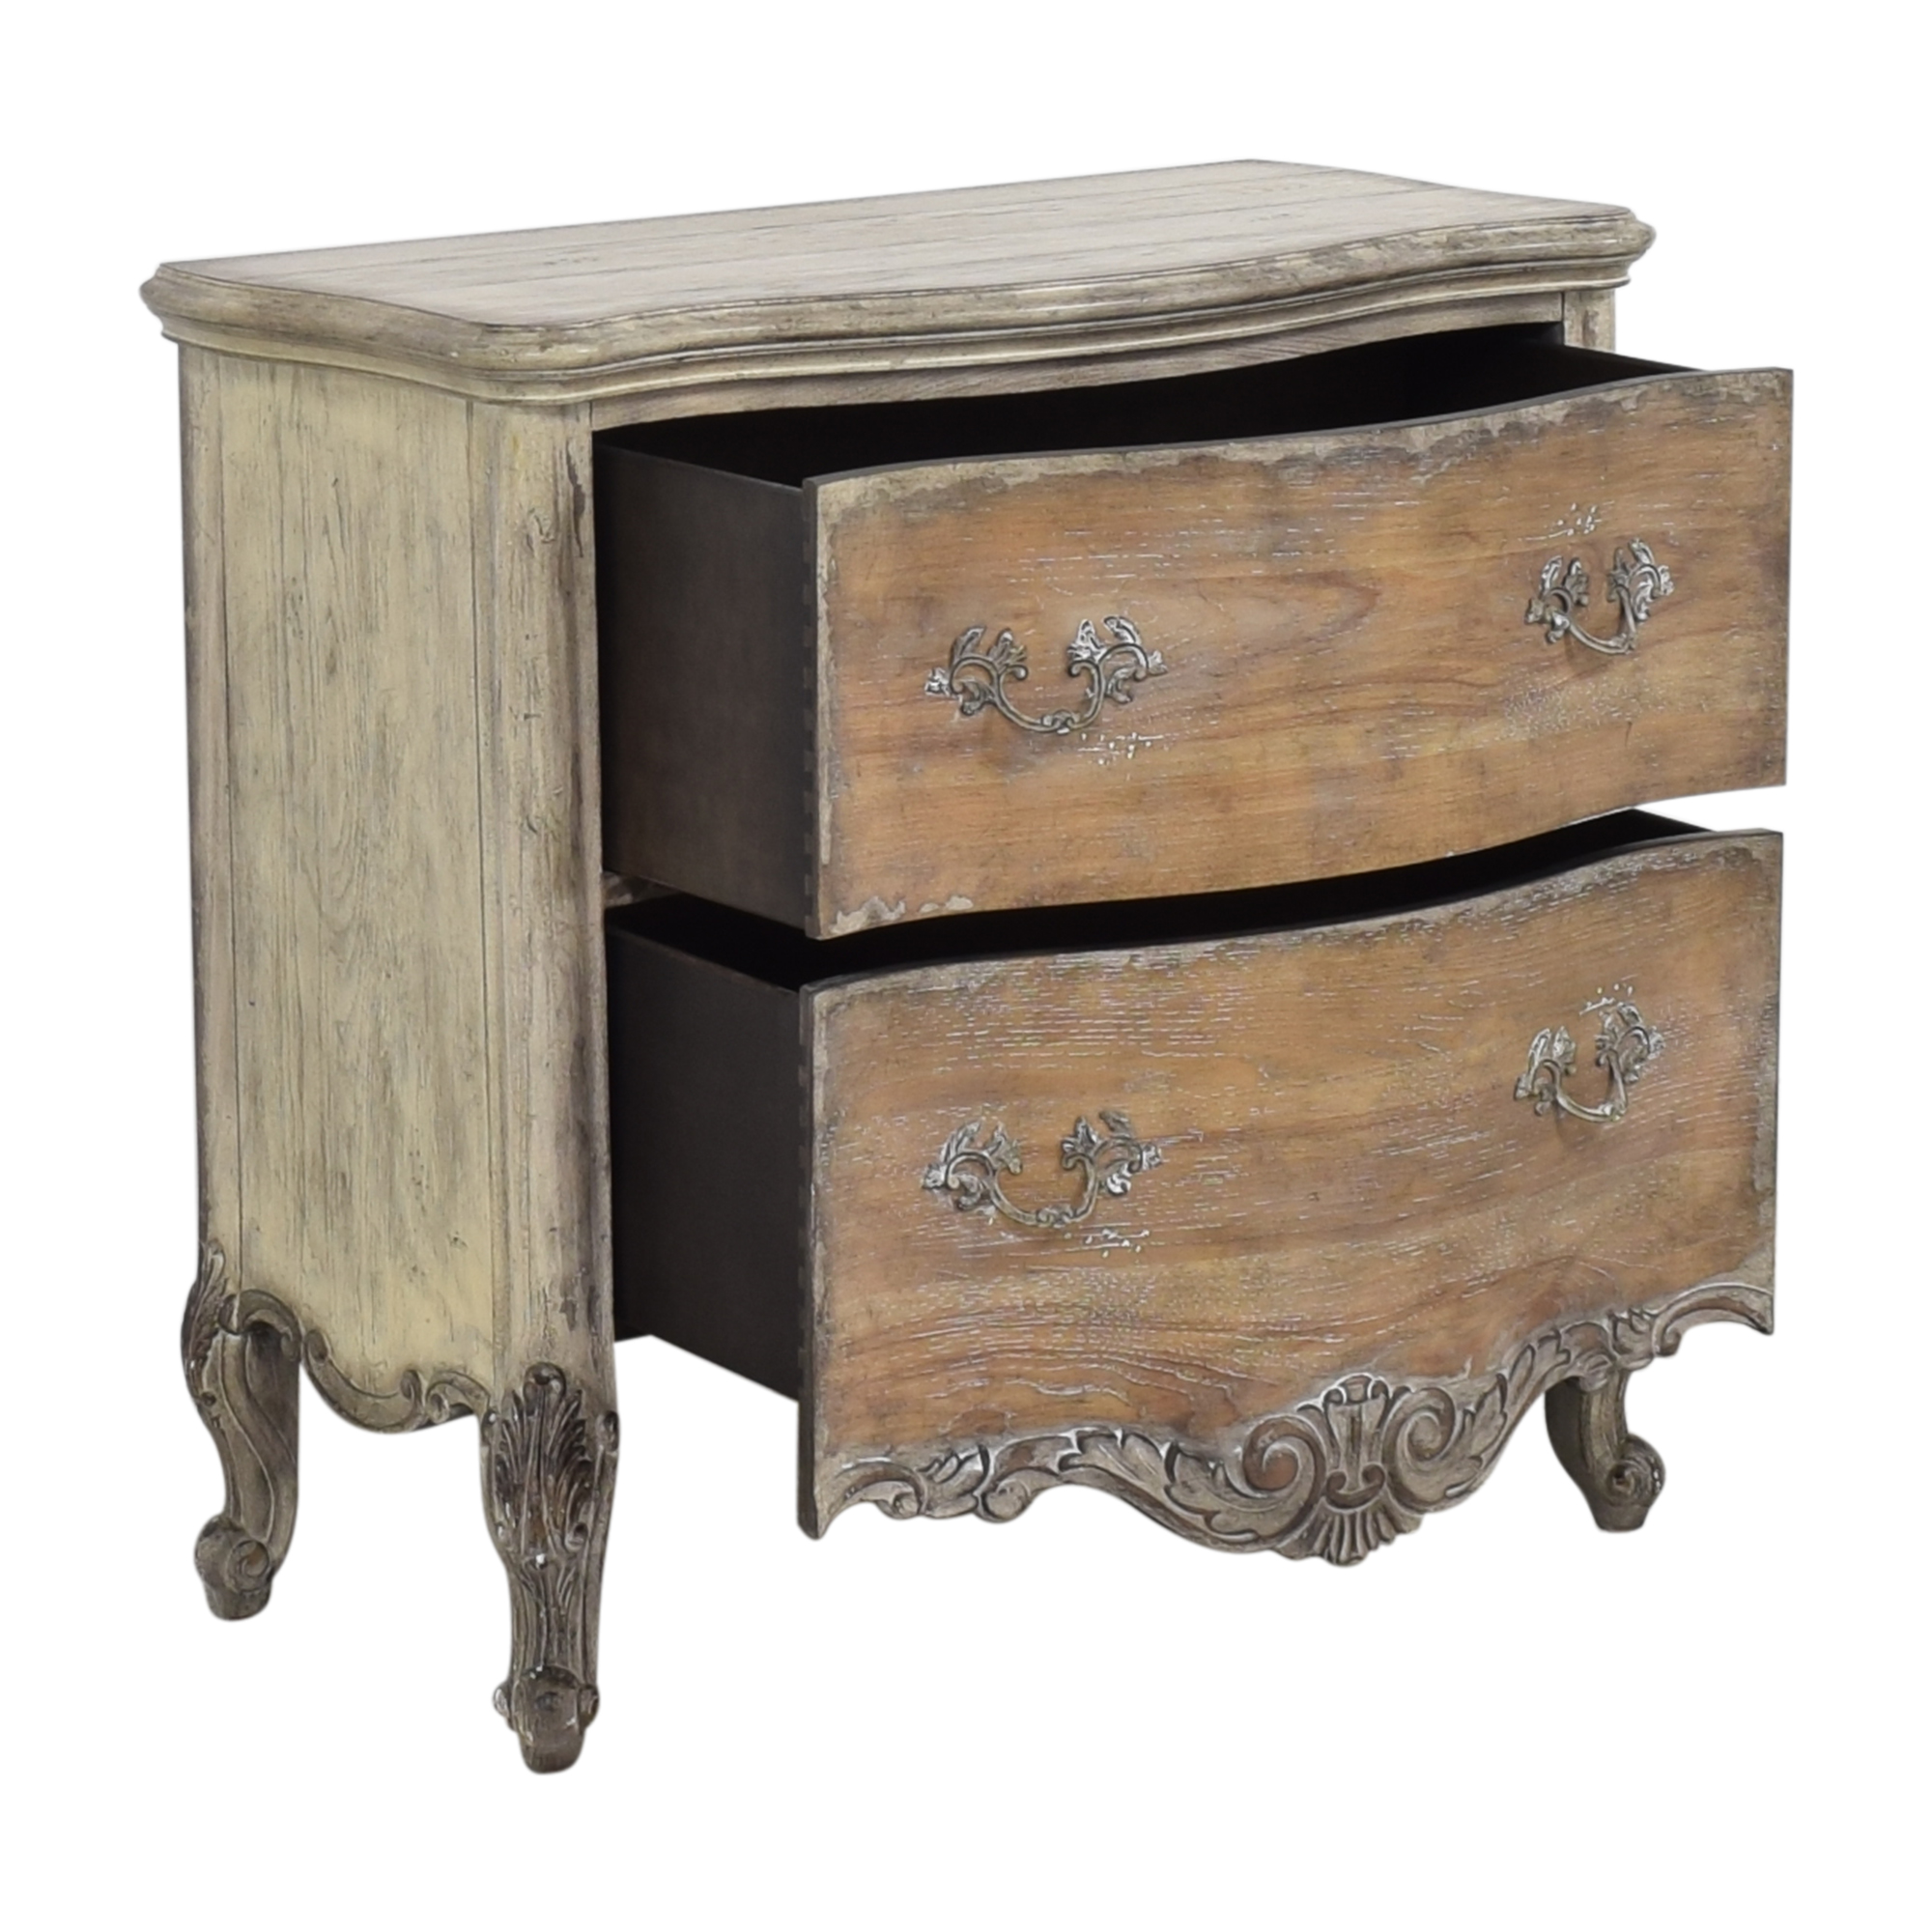 Pulaski Furniture Pulaski Furniture Accentrics Home Monaco Two Drawer Chest on sale